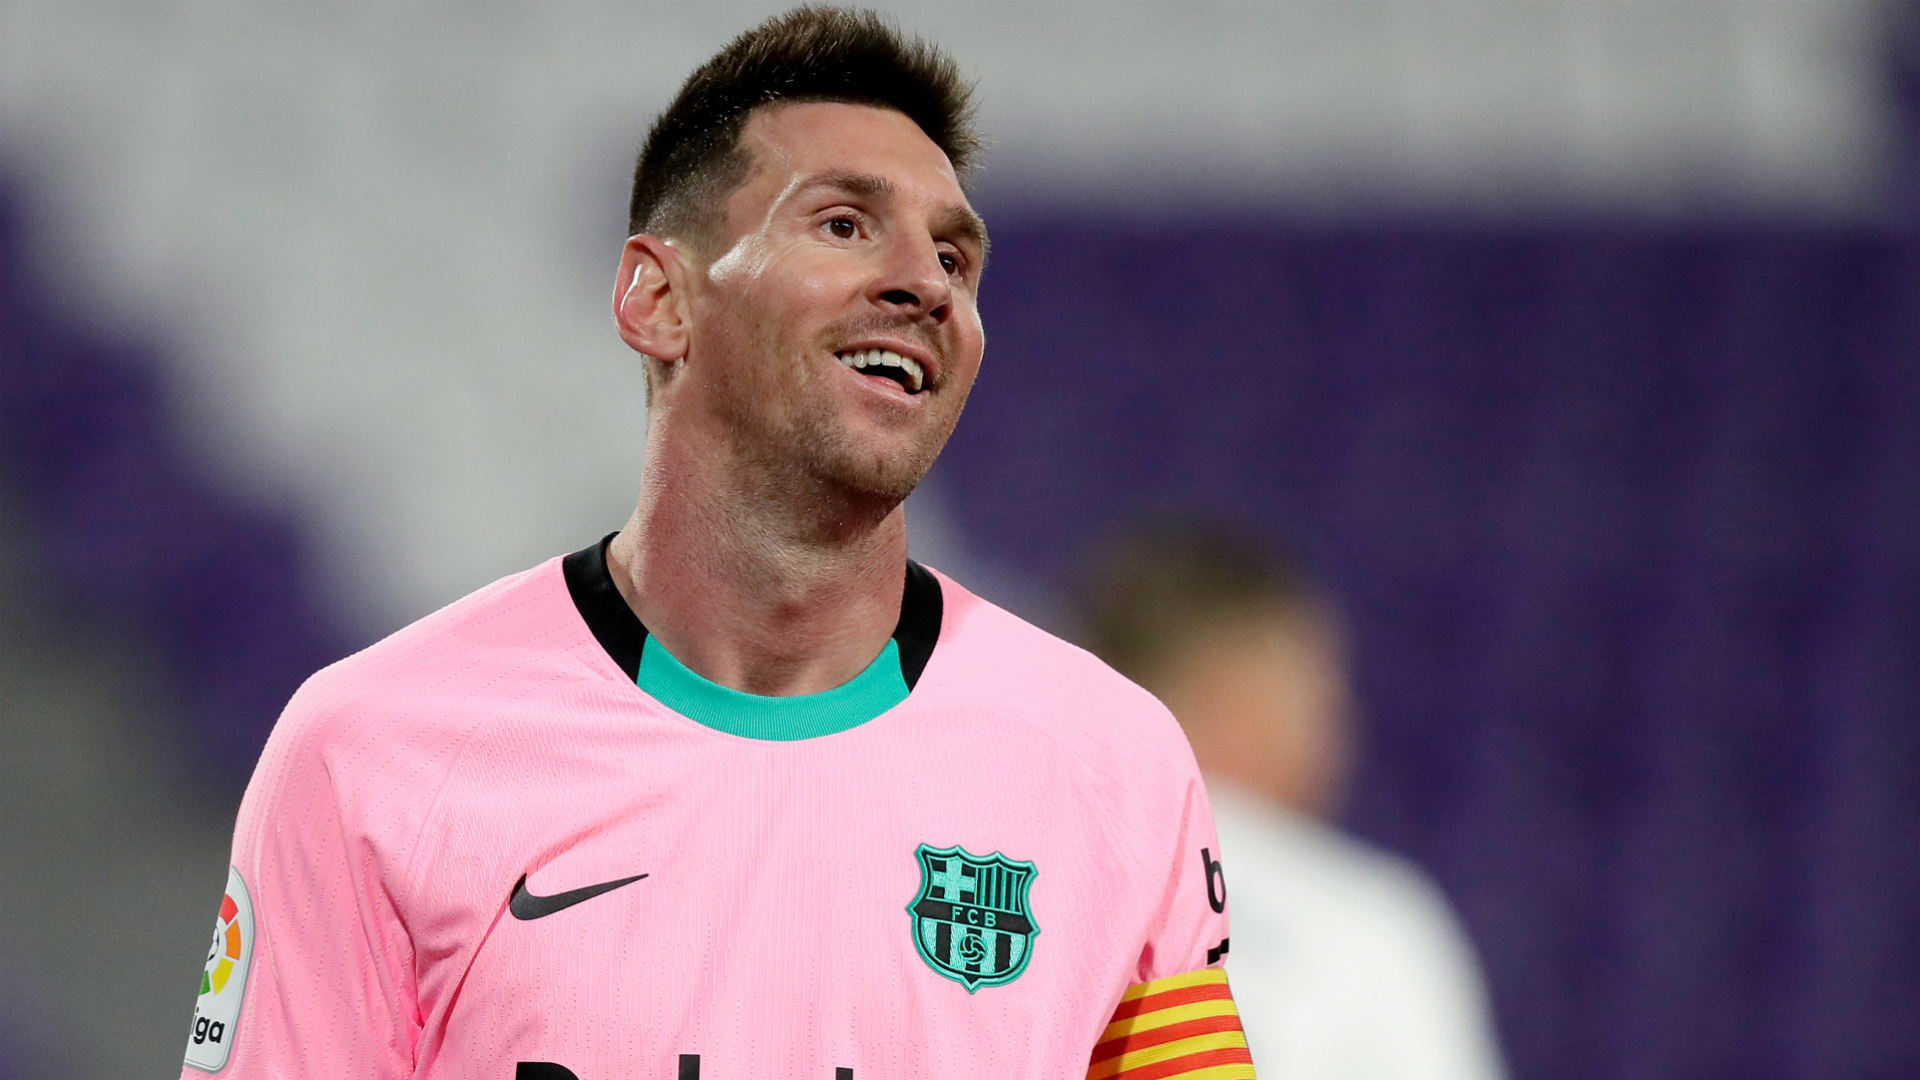 Messi enters final countdown: Potential destinations for the Argentina star